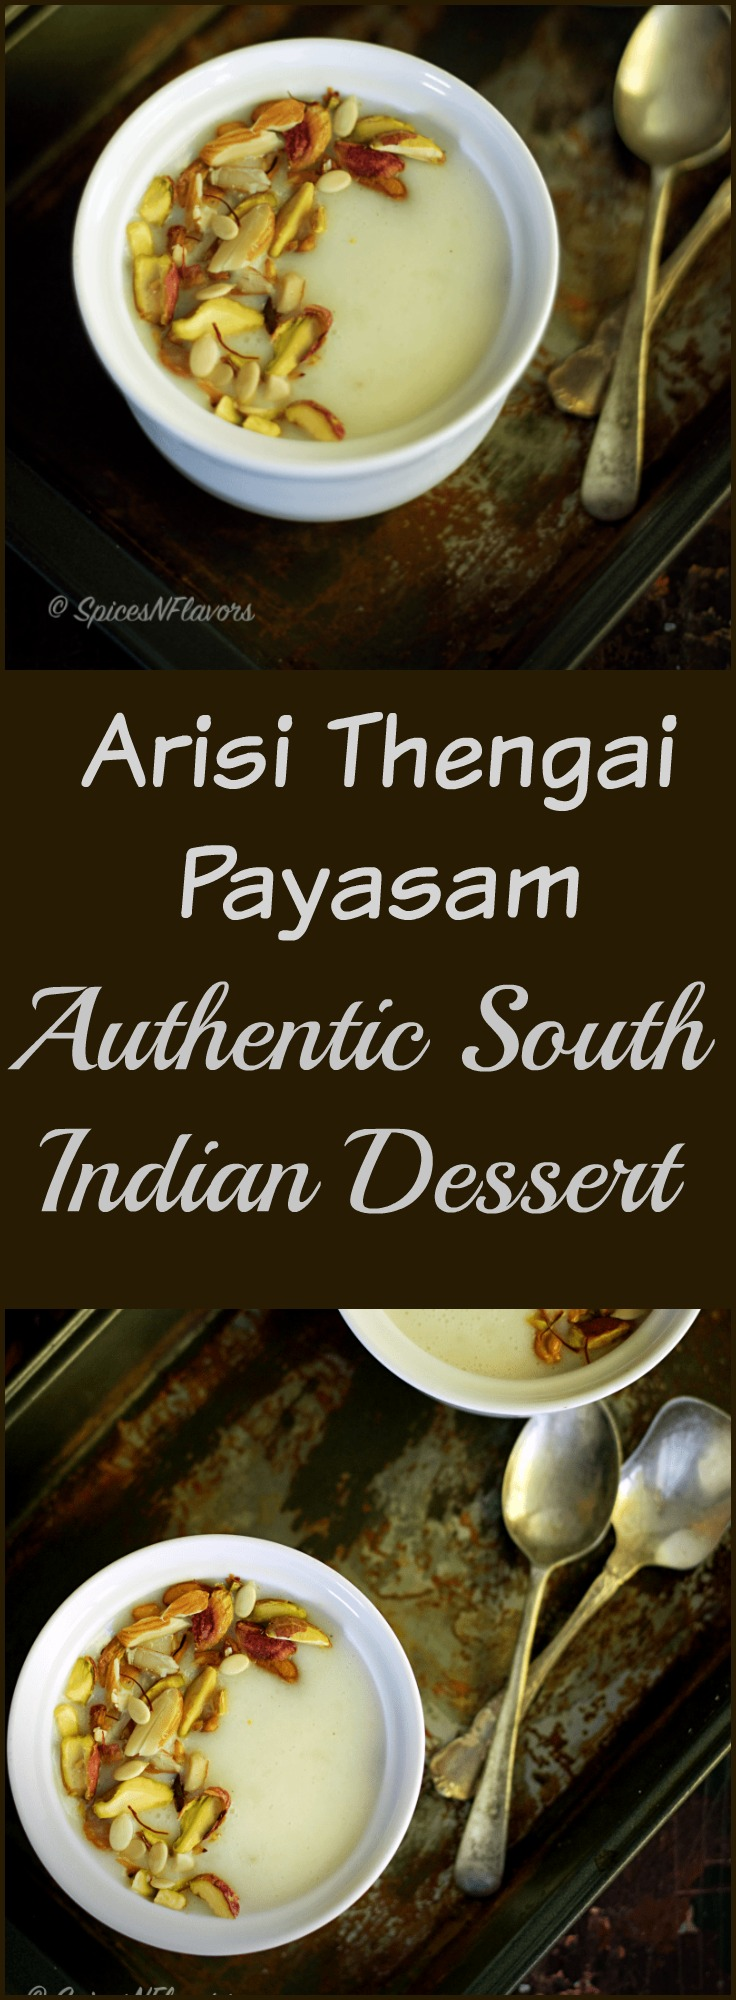 Arisi Thengai Payasam Rice Coconut Kheer Indian Pudding authentic traditional south indian pudding mom's special